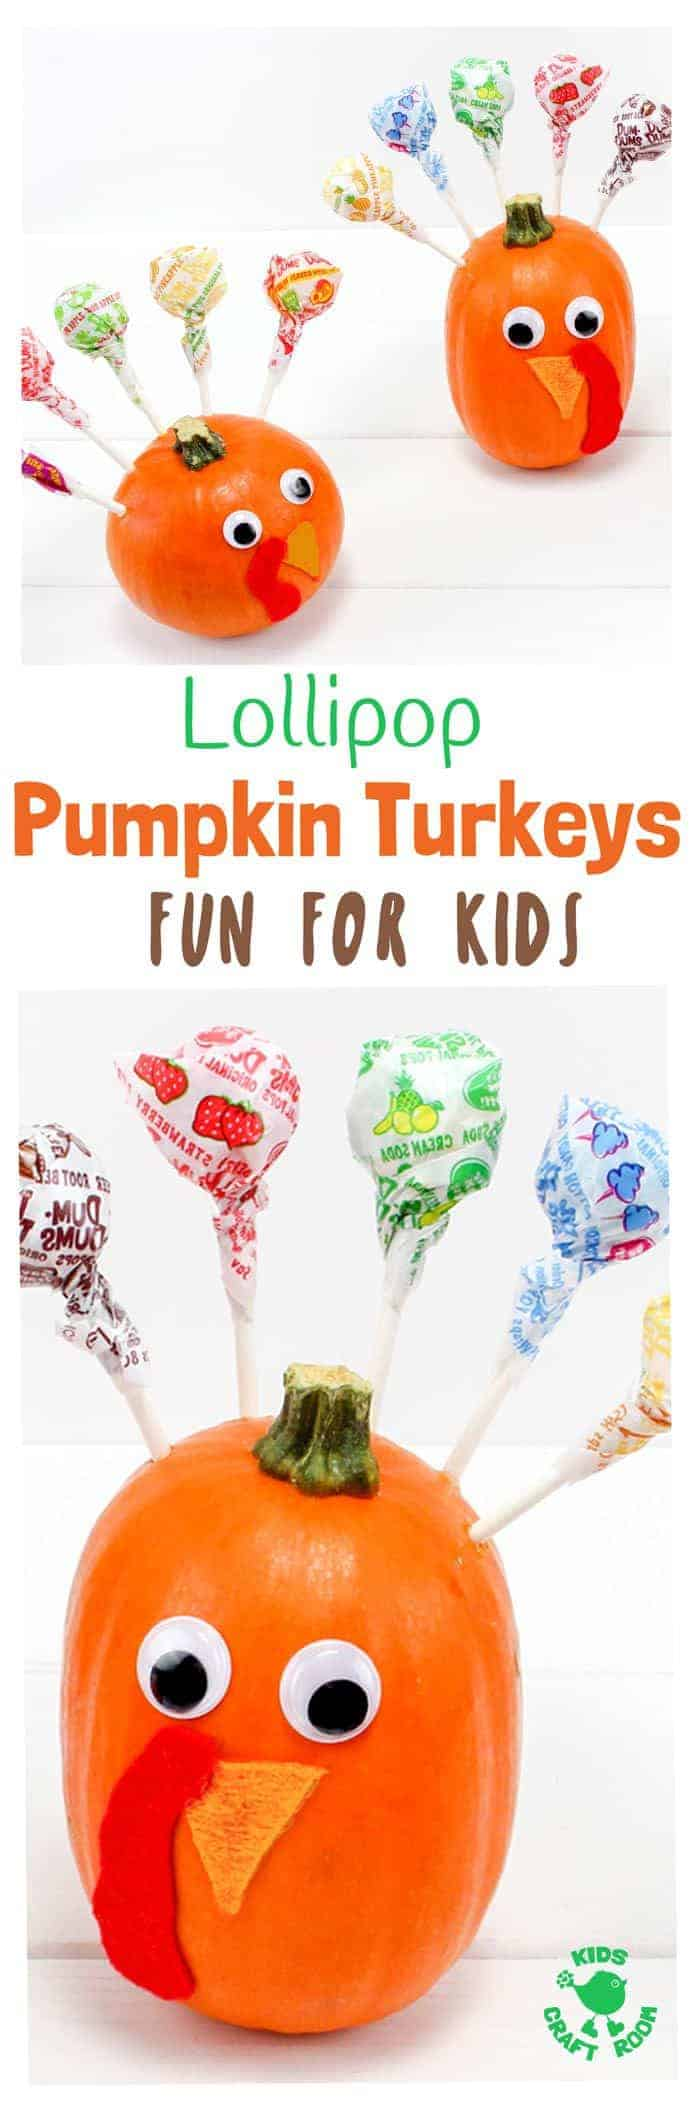 LOLLIPOP PUMPKIN TURKEYS - an easy turkey craft for kids. This fun Fall nature craft and Thanksgiving craft makes a tasty table centrepiece the whole family will enjoy. Load the cute turkeys with all your favourite flavoured suckers. What a treat! Gobble, gobble, yum!